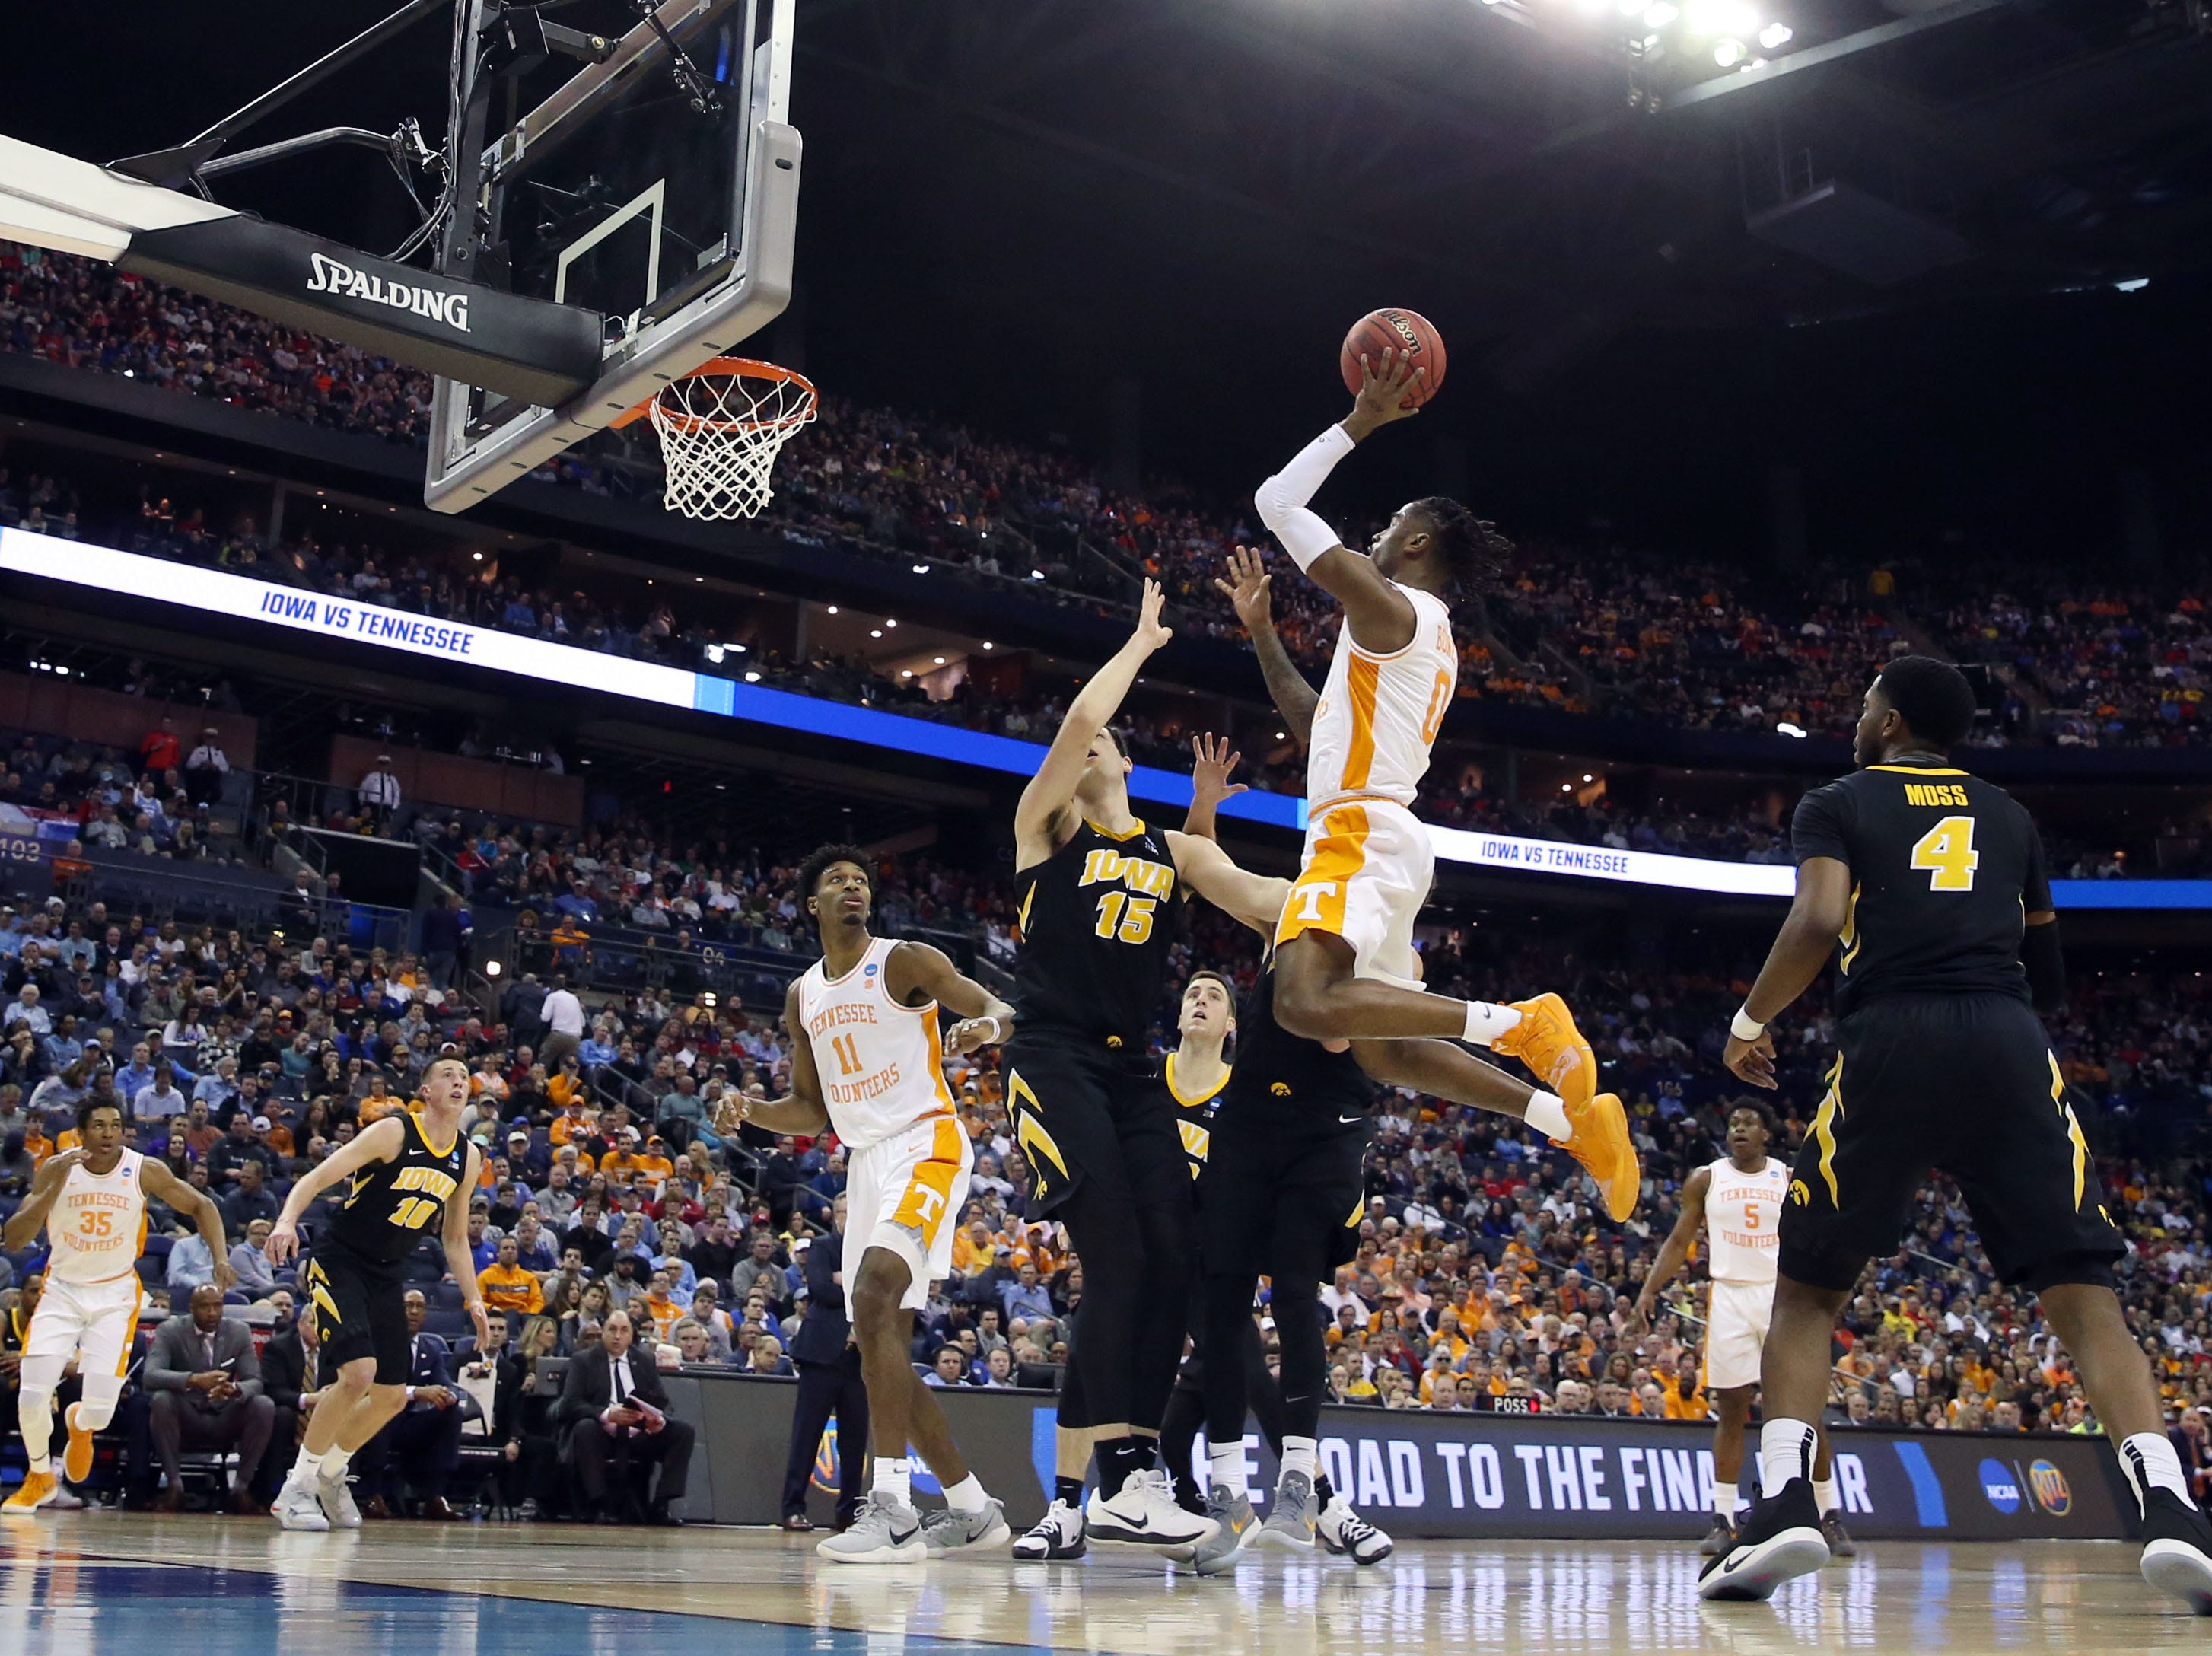 Tennessee Volunteers guard Jordan Bone (0) shoots the ball over Iowa Hawkeyes forward Ryan Kriener (15) in the first half in the second round of the 2019 NCAA Tournament at Nationwide Arena.